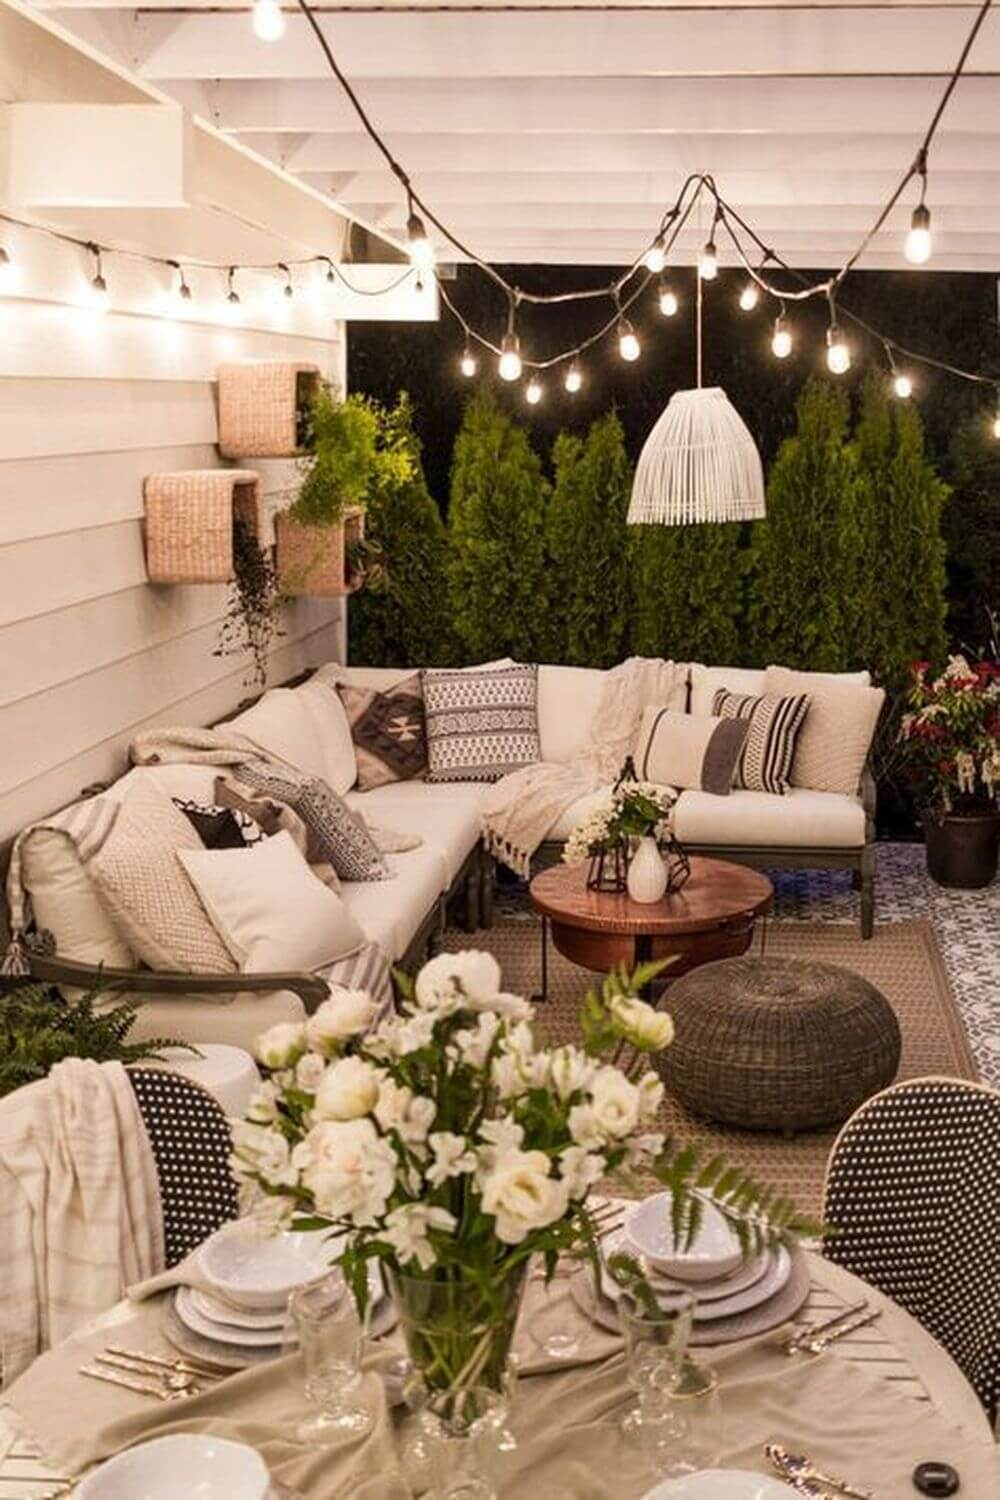 33 Best Outdoor Living Space Ideas and Designs for 2020 on Garden Living Space id=96267